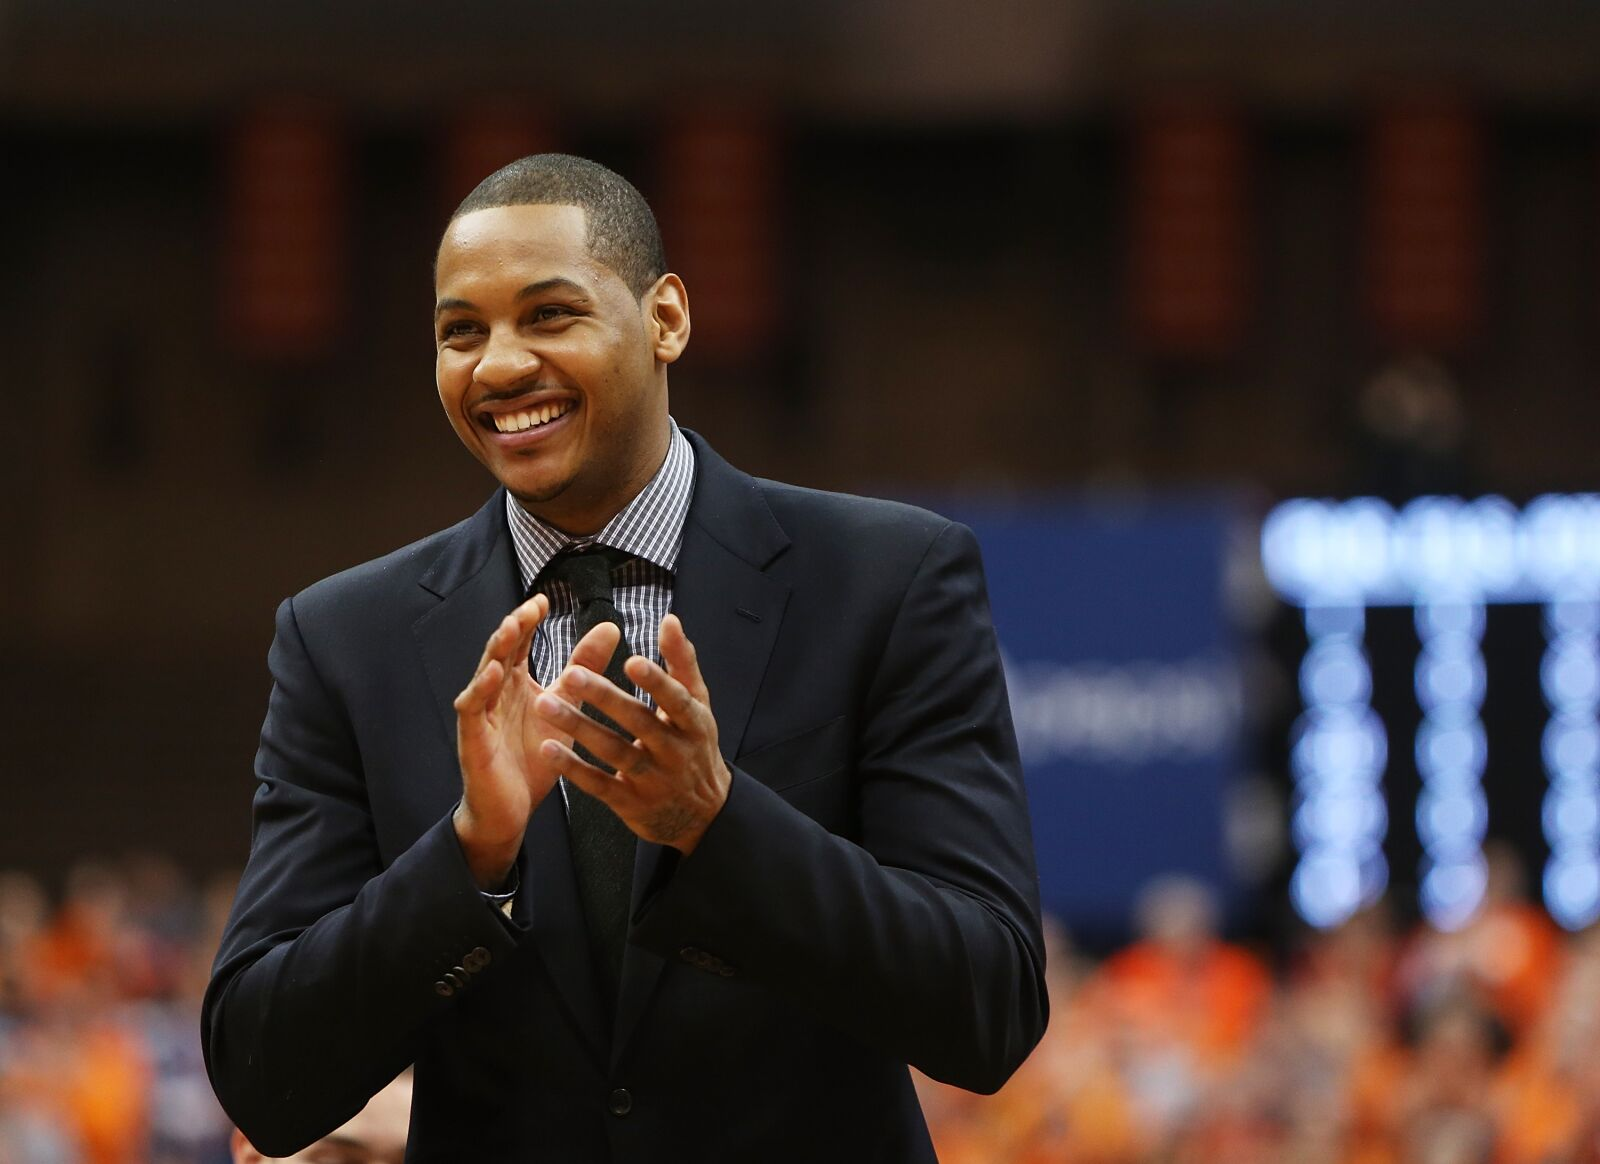 Syracuse Basketball: Boeheim's Army taking a hard look at Carmelo Anthony